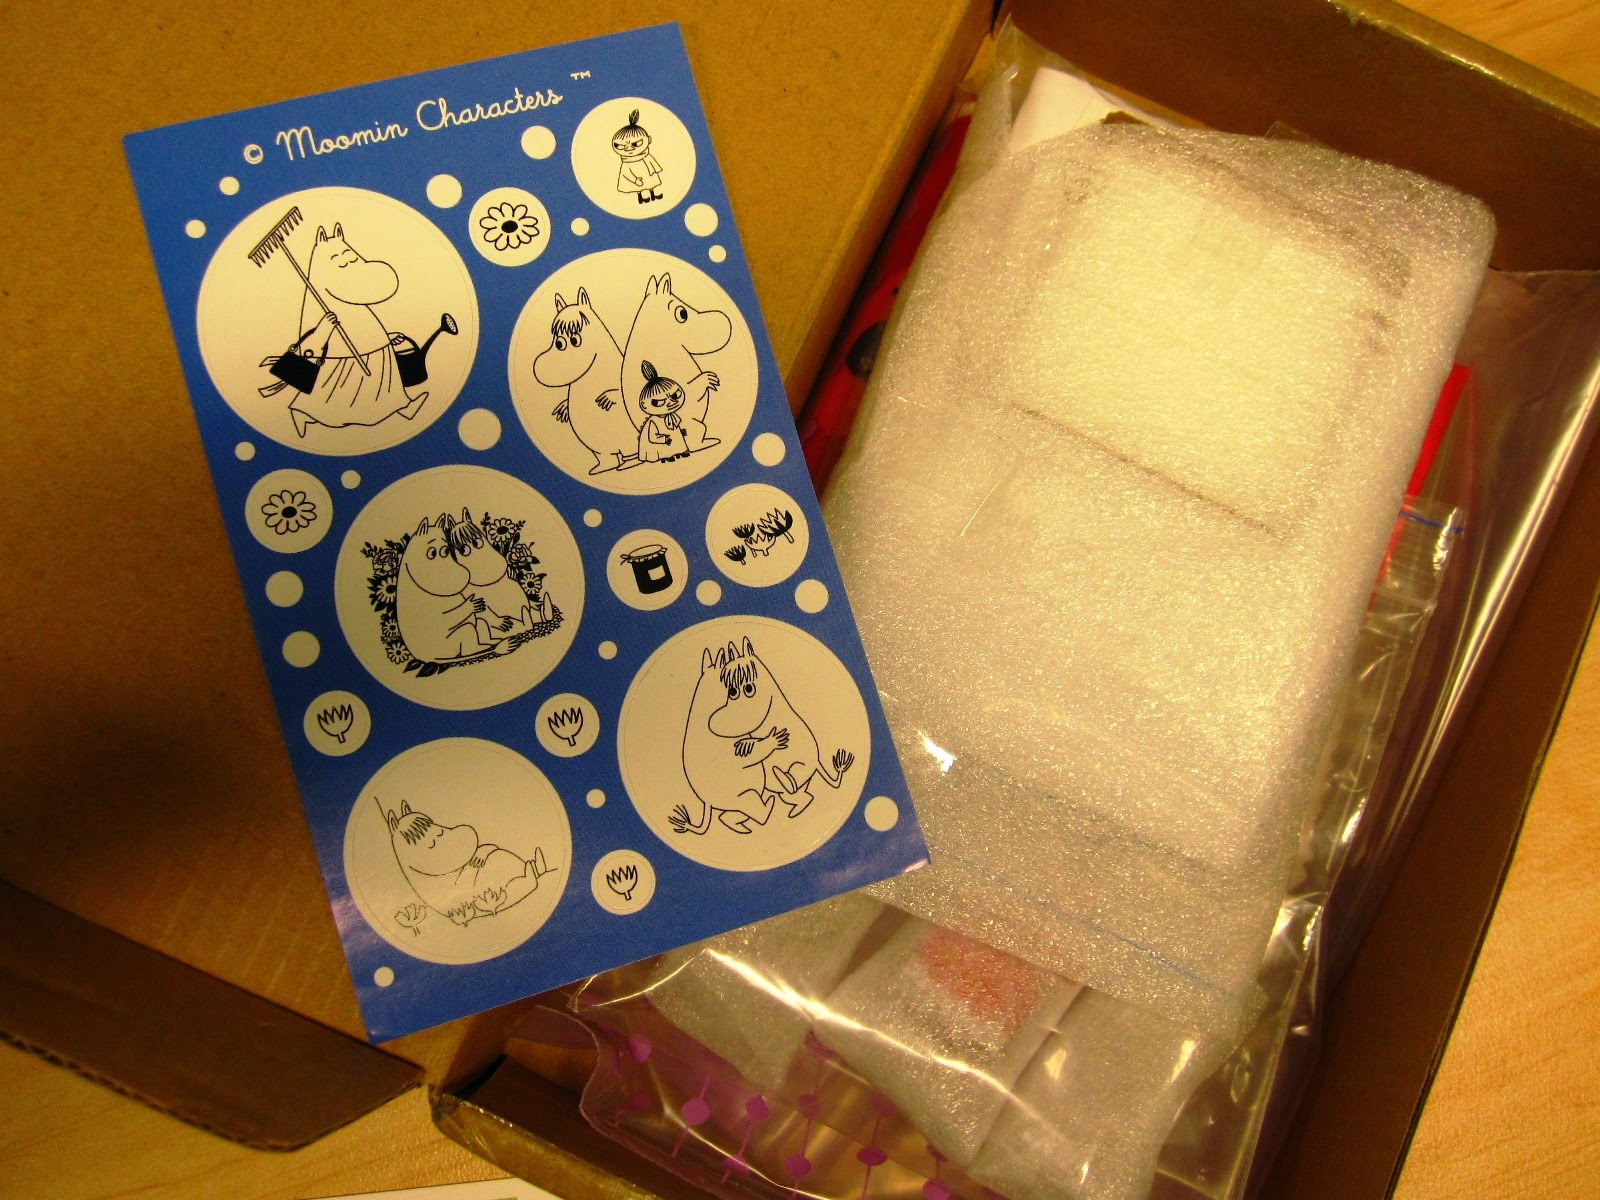 Opened package with Moomin stickers and wrapped contents.